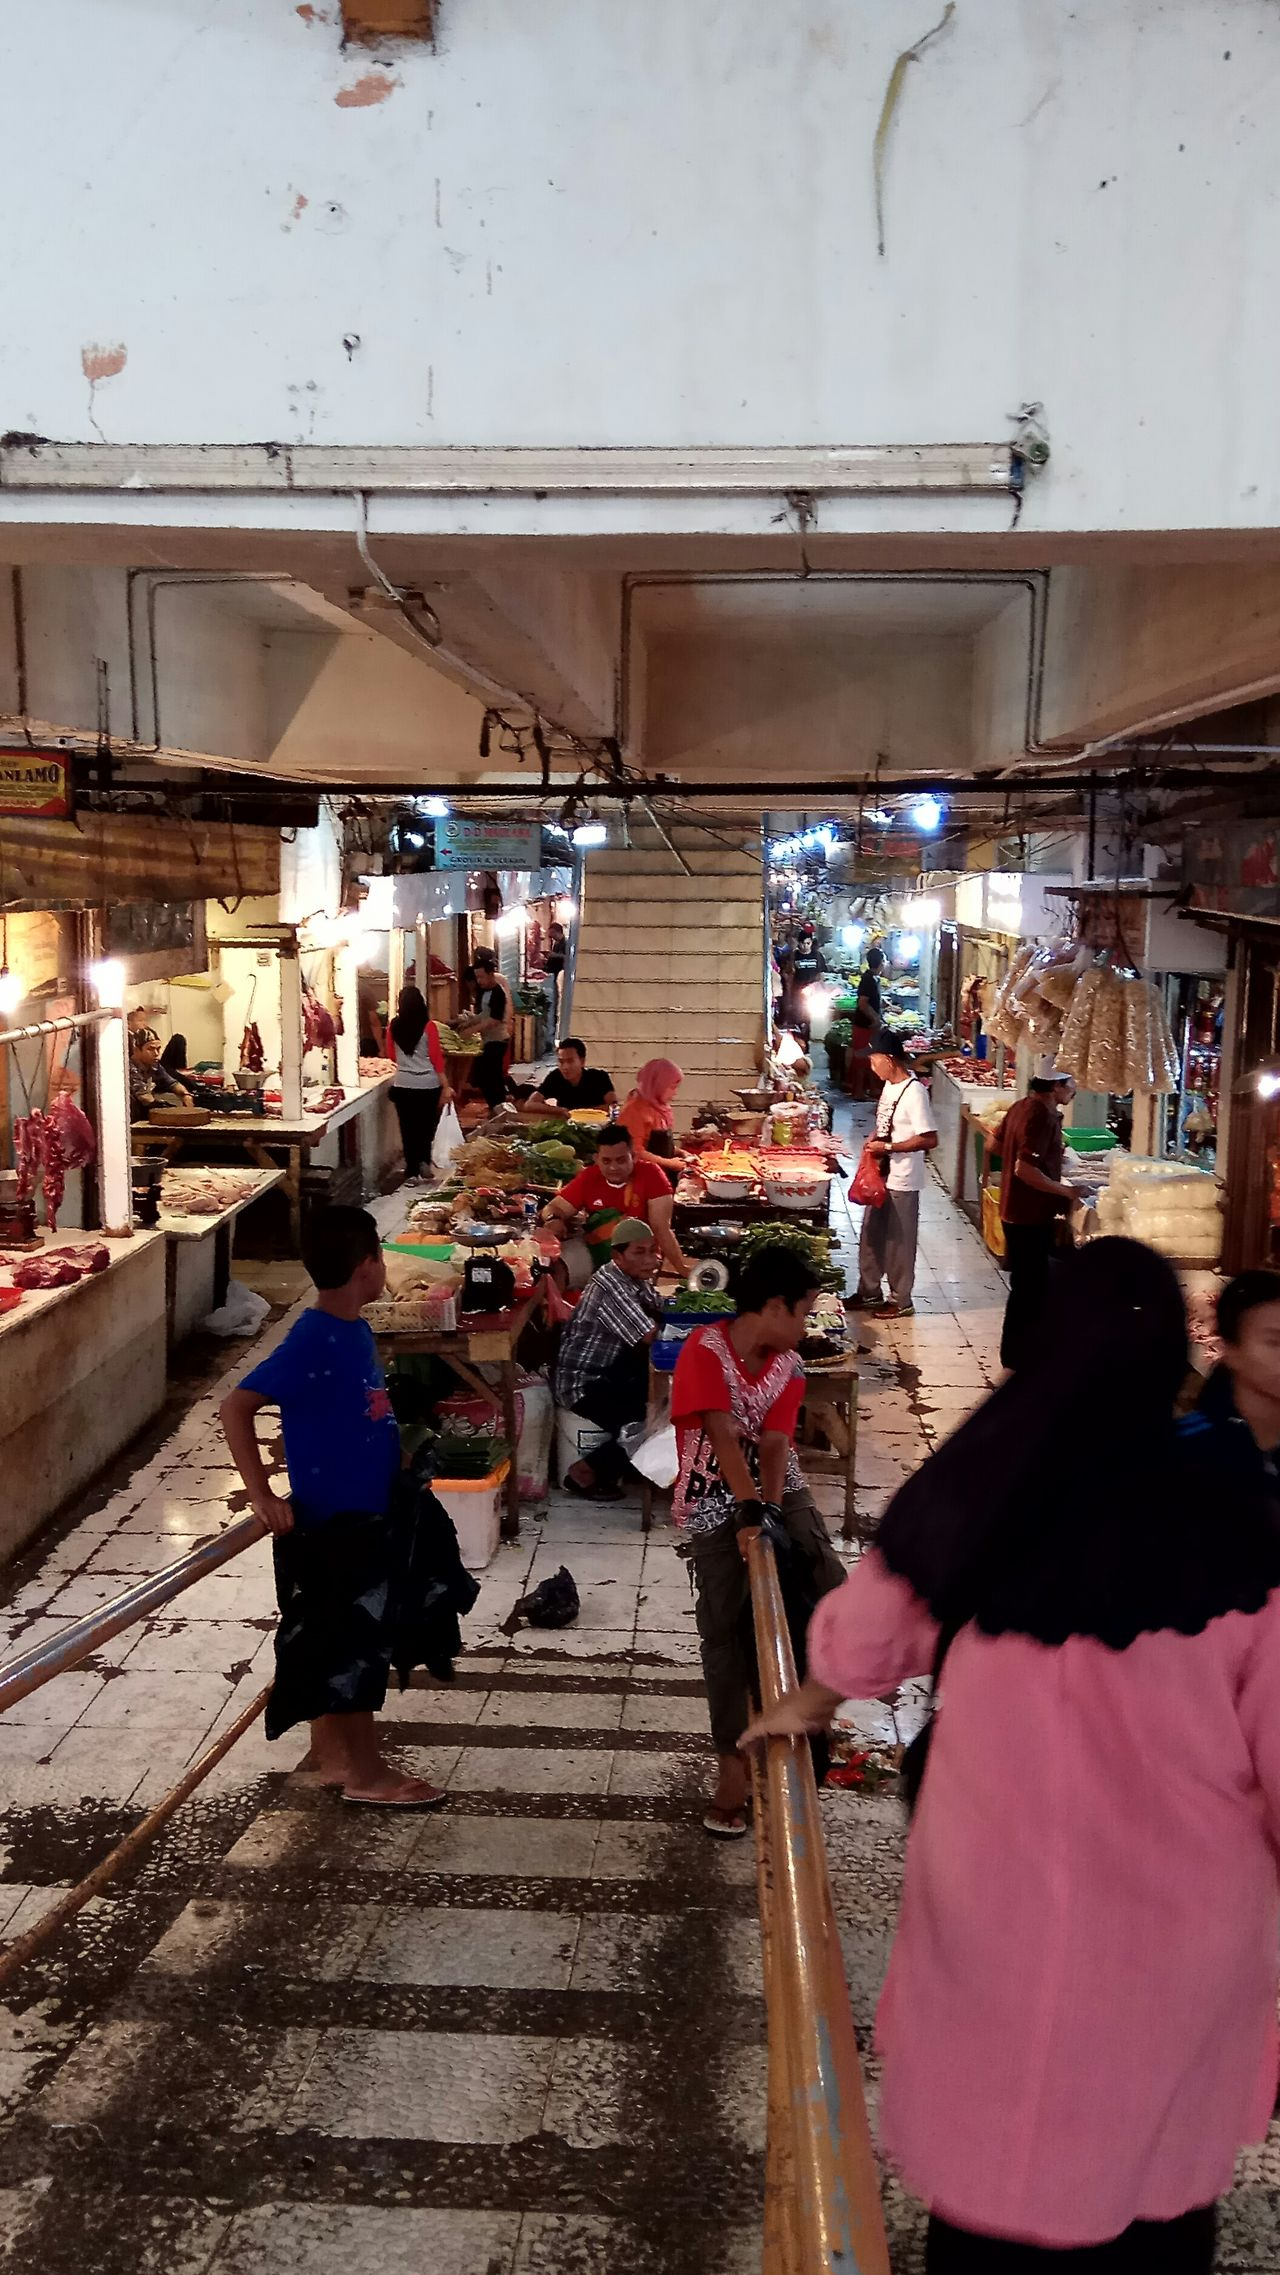 tradisional market Adult Architecture Building Exterior Built Structure City City Life Consumerism Crowd Customer  Day Large Group Of People Leisure Activity Lifestyles Market Market Stall Men Outdoors People Real People Retail  Standing Streetphotography Tradisionalmarket Walking Women